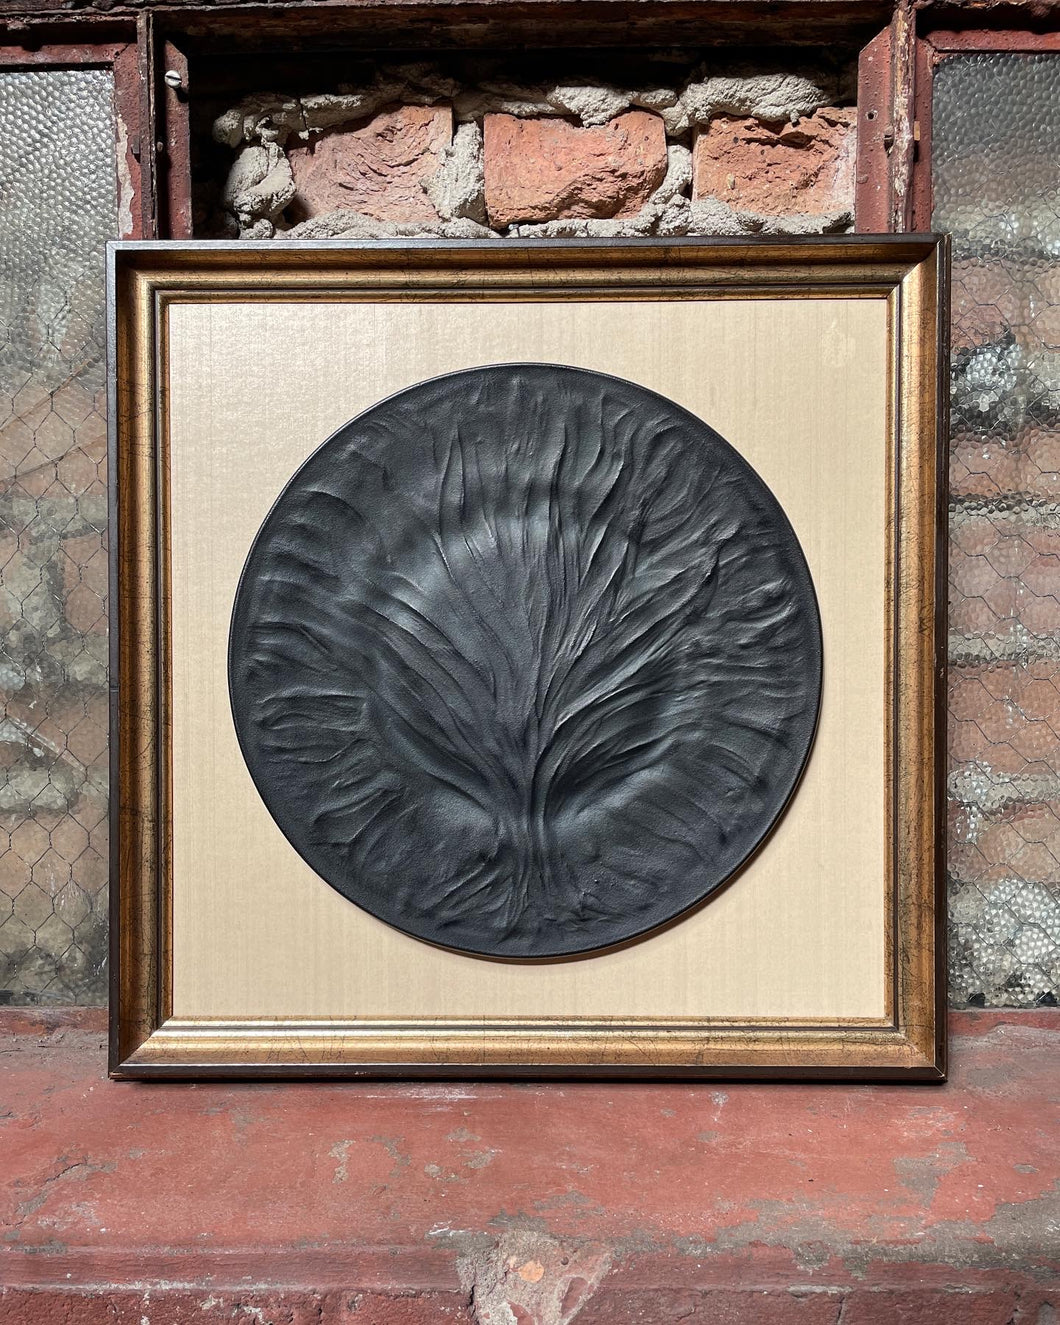 Frame and Matted Ceramic Tree of Life Plate